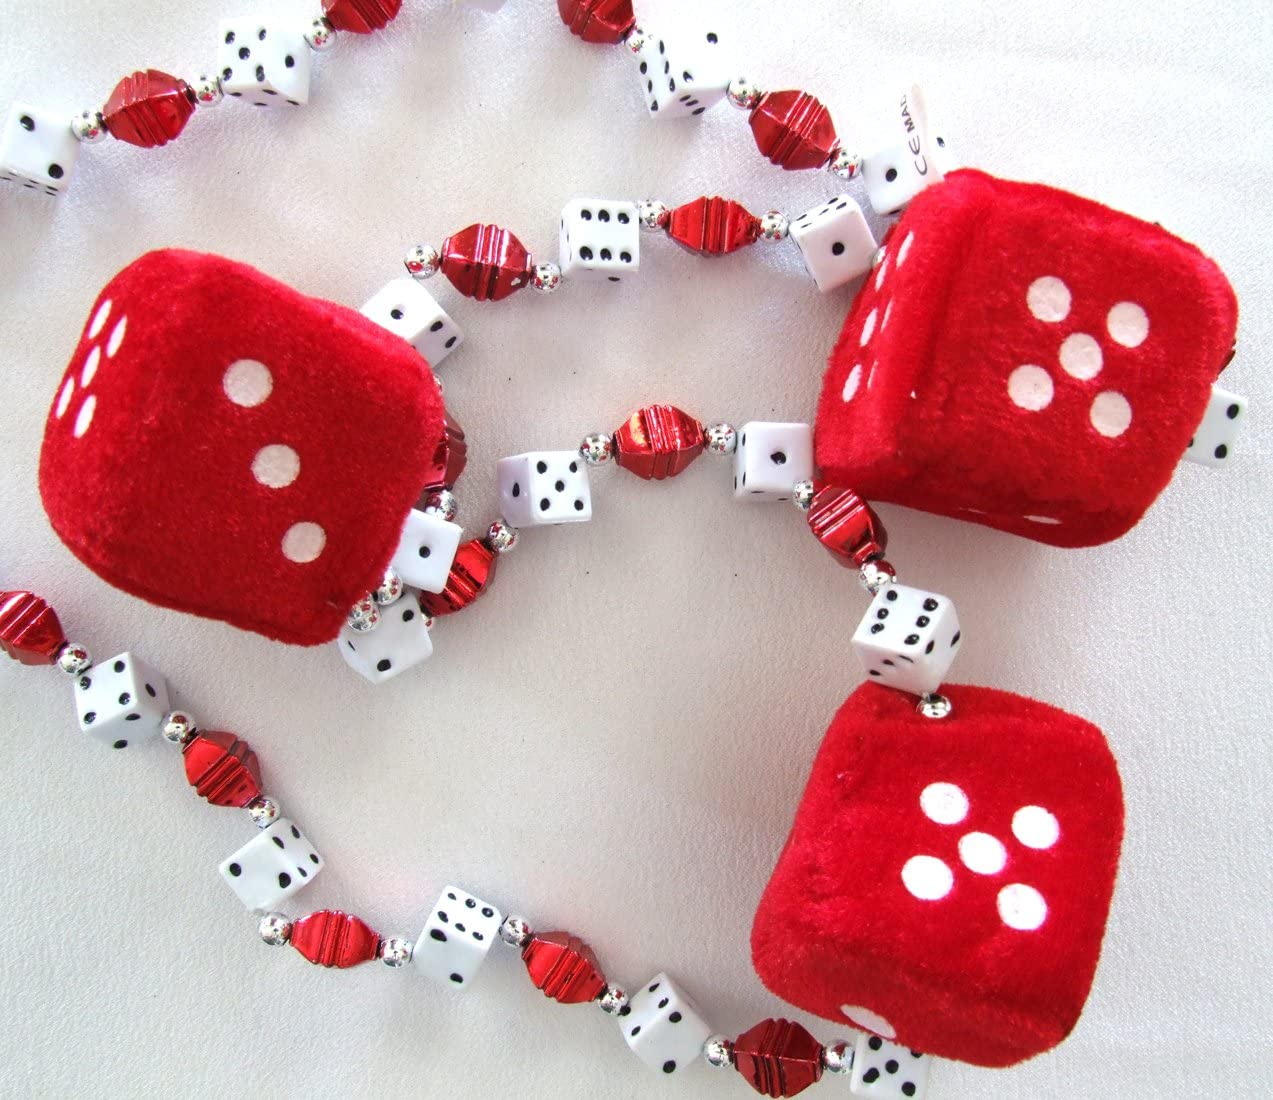 New Orleans Red Fuzzy Dice Necklace Selling rankings Gras Craps Beads Ranking TOP20 Mardi